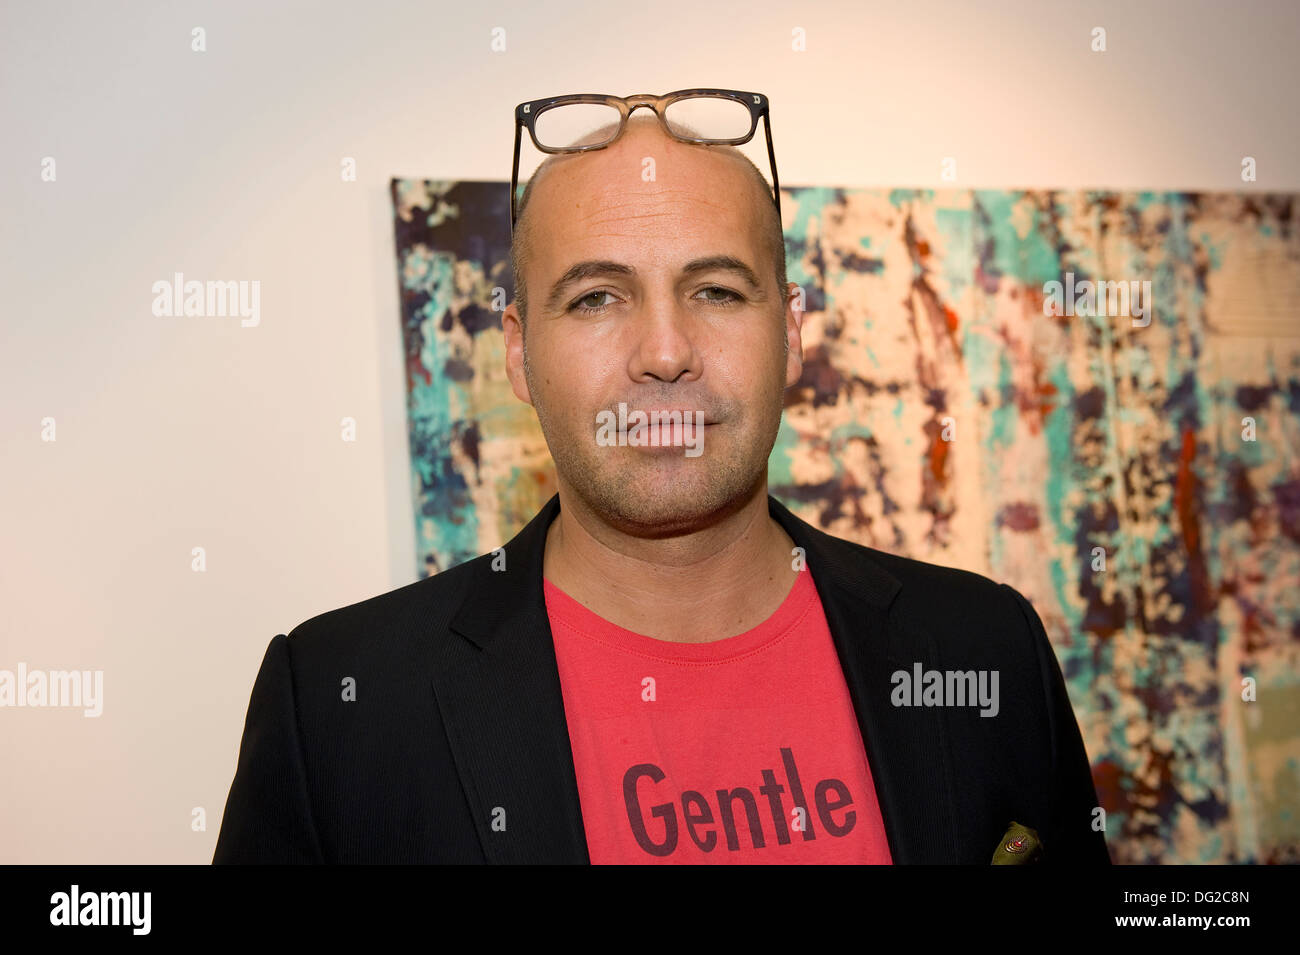 Billy Zane at his Seize the Day Bed exhibition at the Rook & Raven Gallery London England. - Stock Image